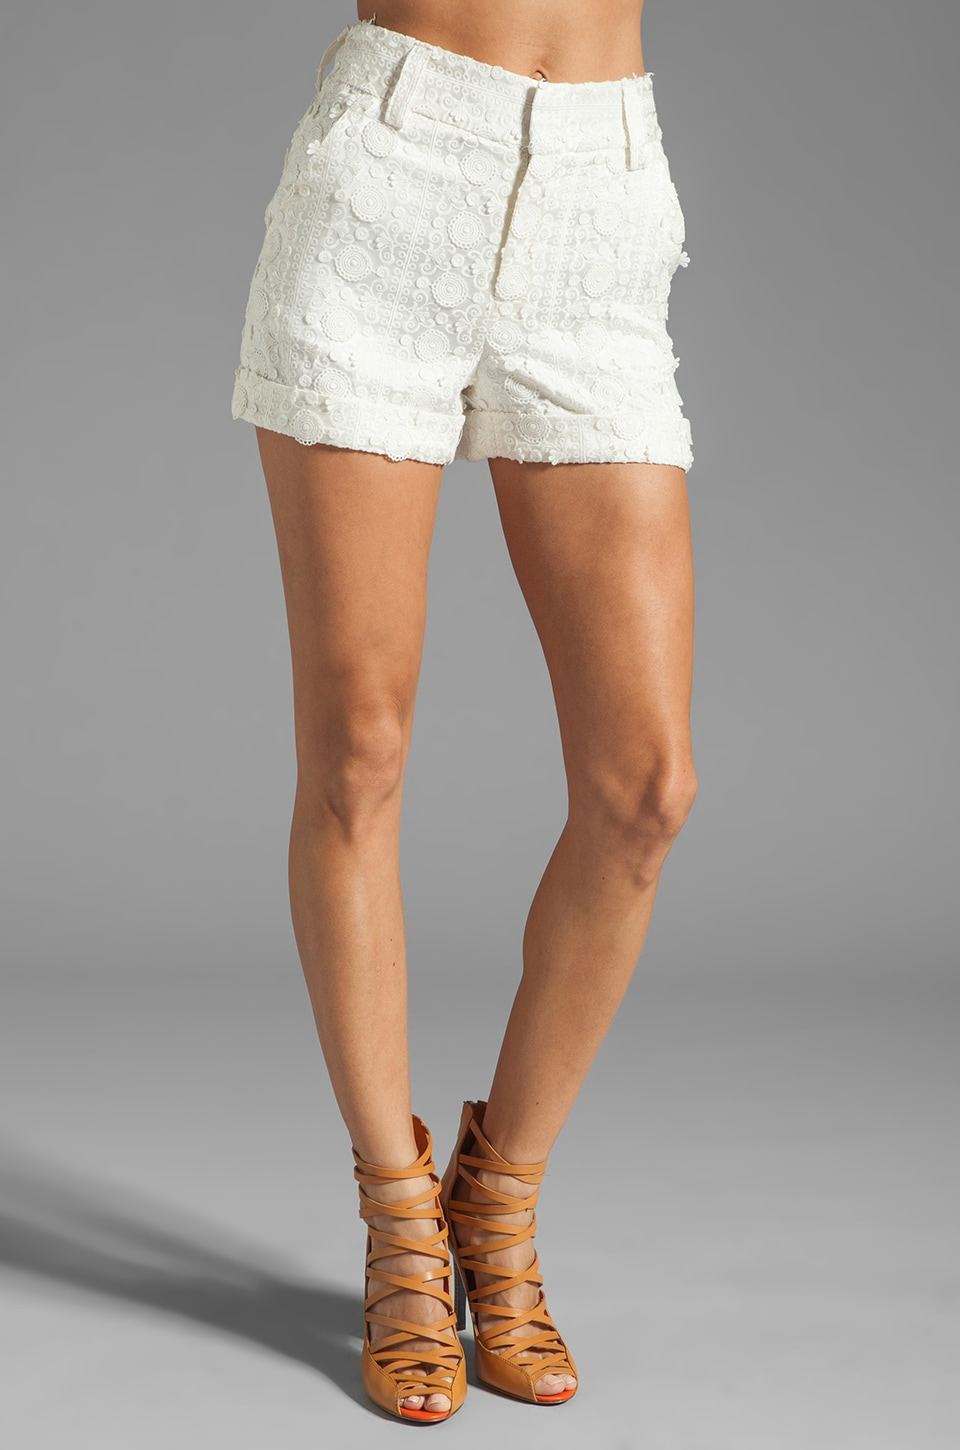 Alice + Olivia Paula High Waist Short in White